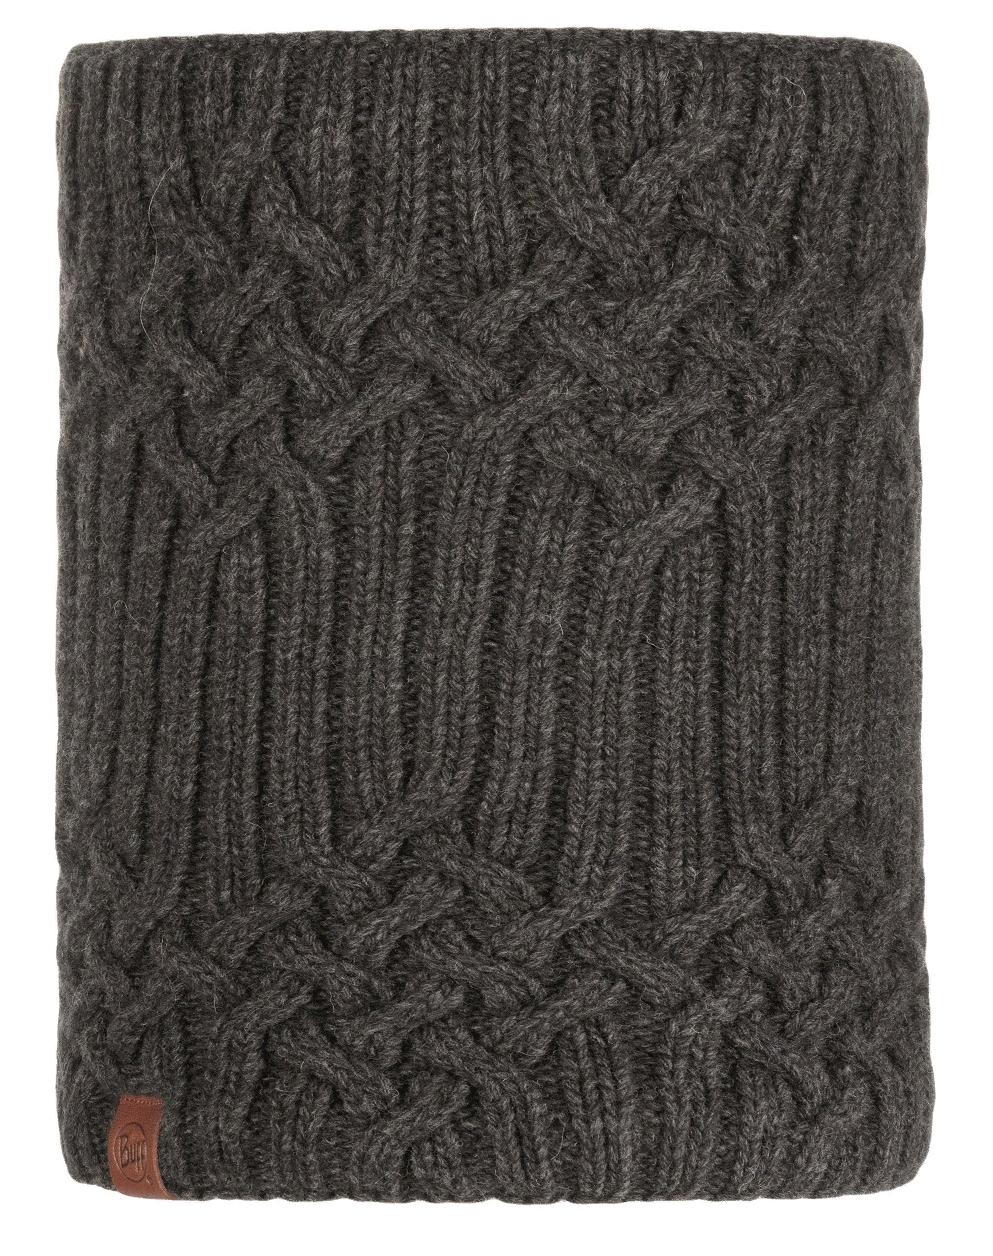 Шарф Buff Knitted & Polar Neckwarmer Helle Graphite